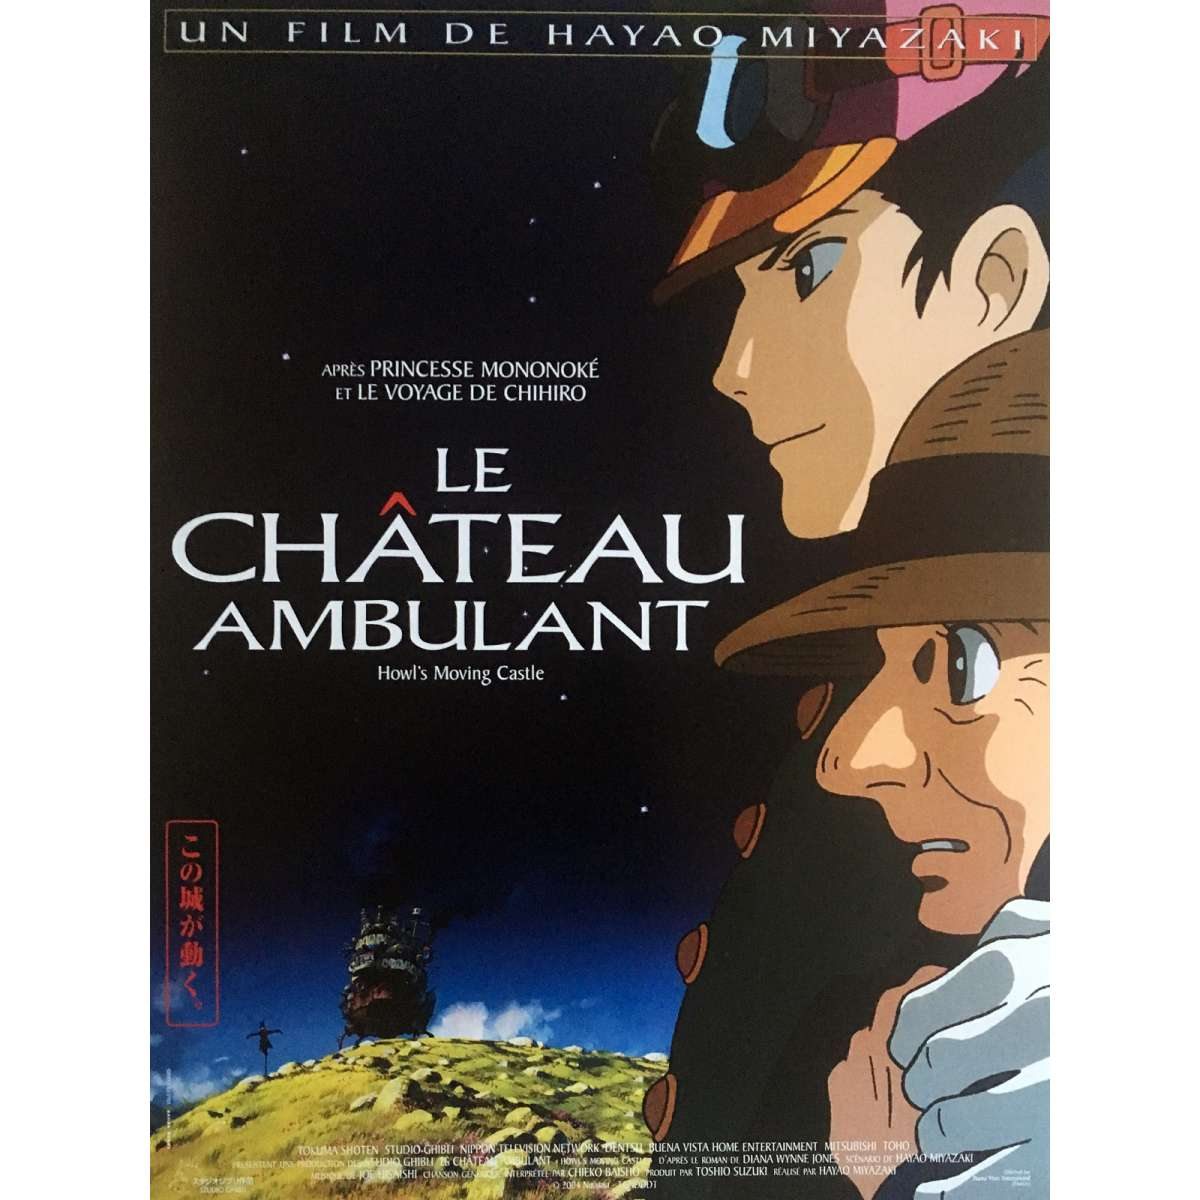 HOWL'S MOVING CASTLE Movie Poster 15x21 In